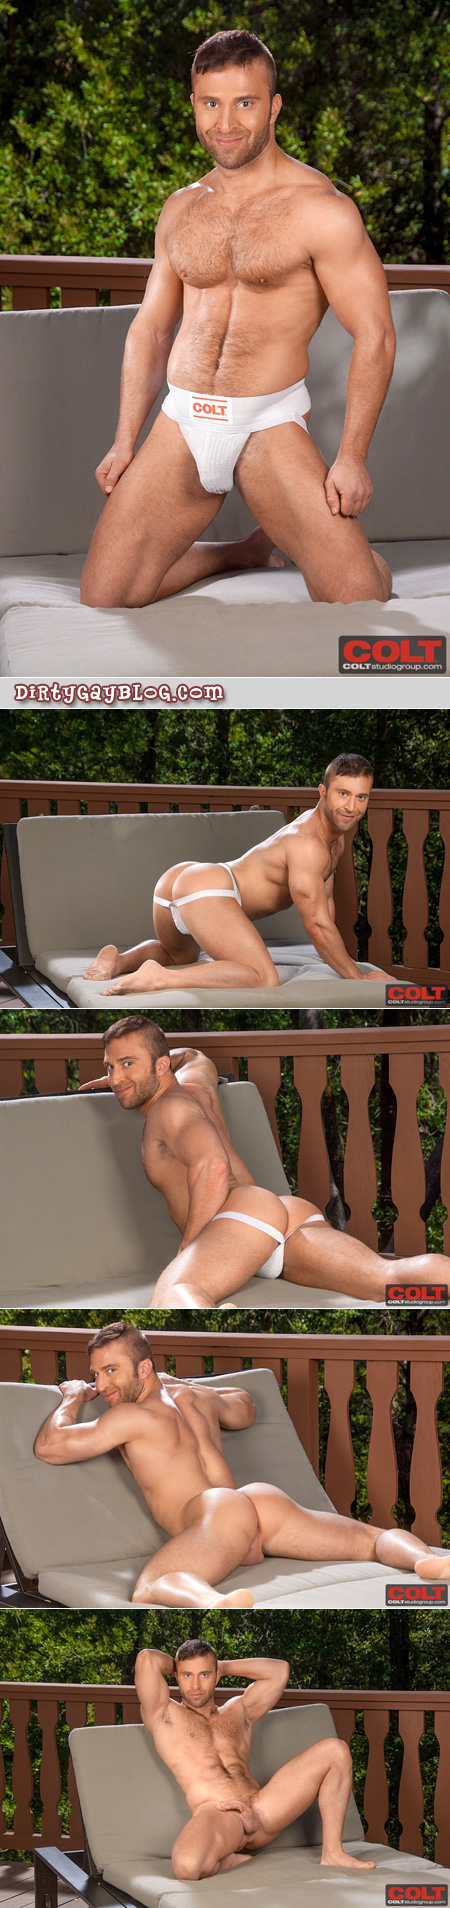 Furry, muscular bottom shows off his muscle ass in a classic white jockstrap.